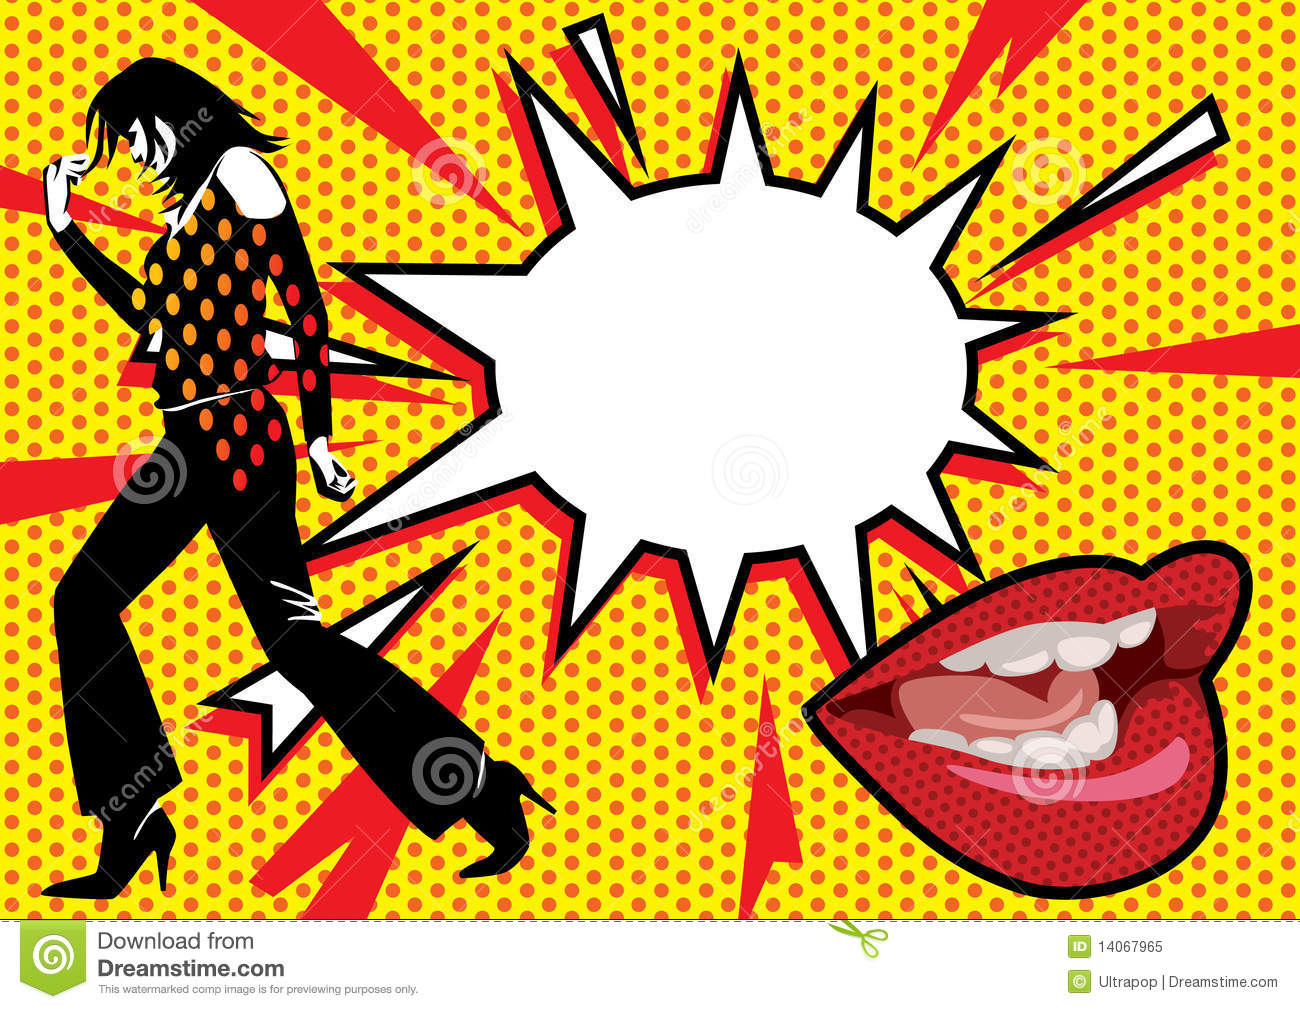 Girl Red Lips Wallpaper Pop Art Burst 2 Royalty Free Stock Photo Image 14067965